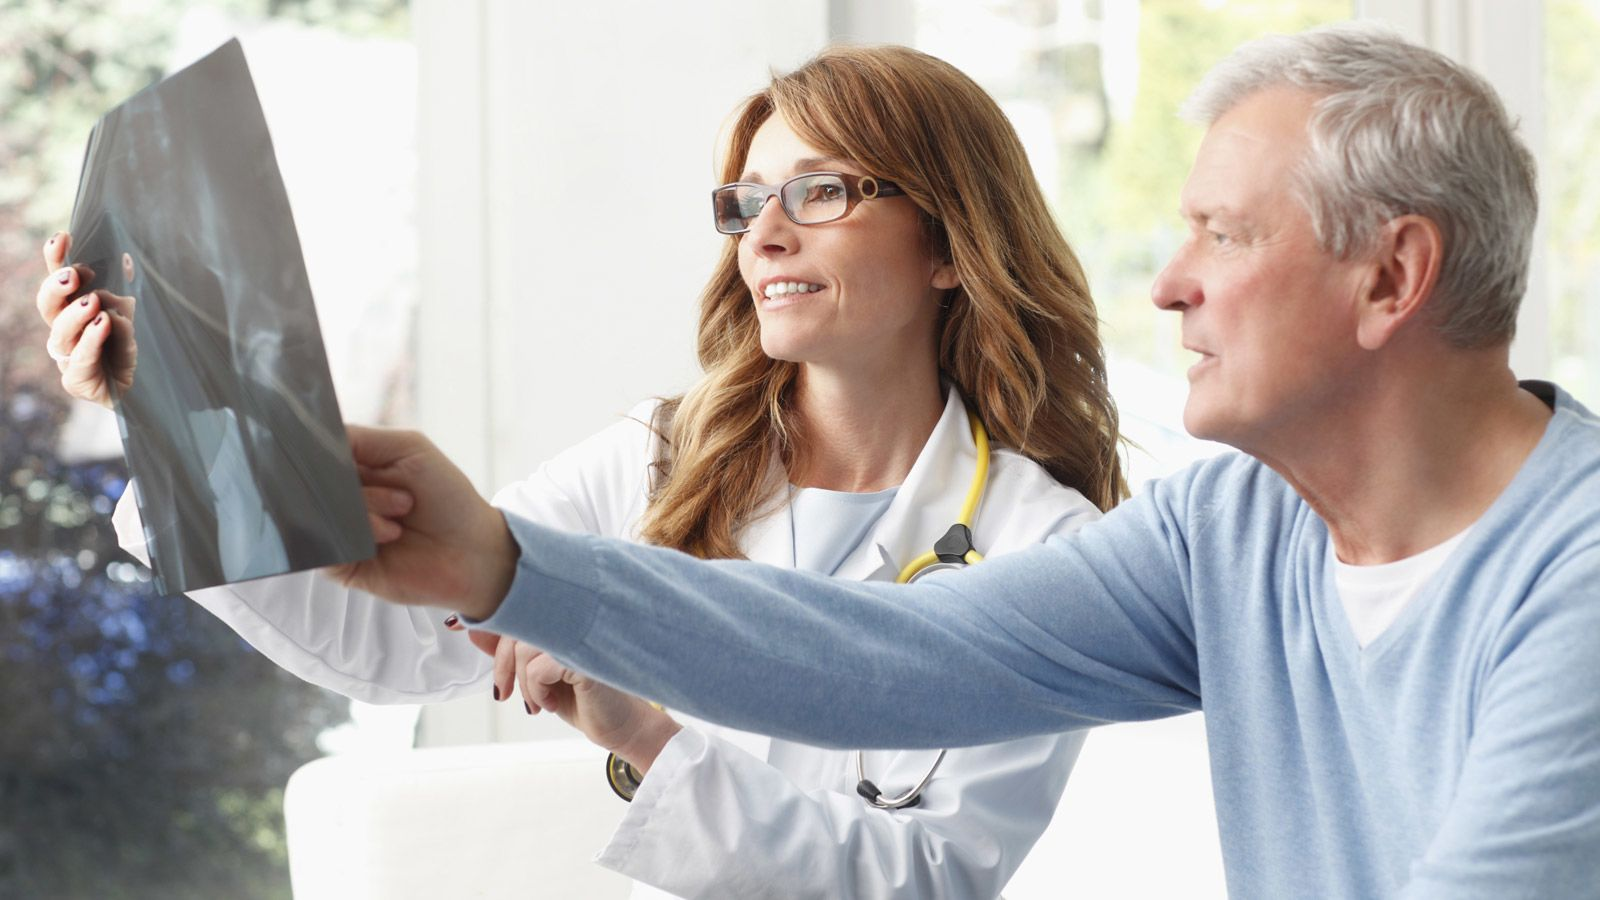 4 Ways to Slash Your Risk of Colon Cancer